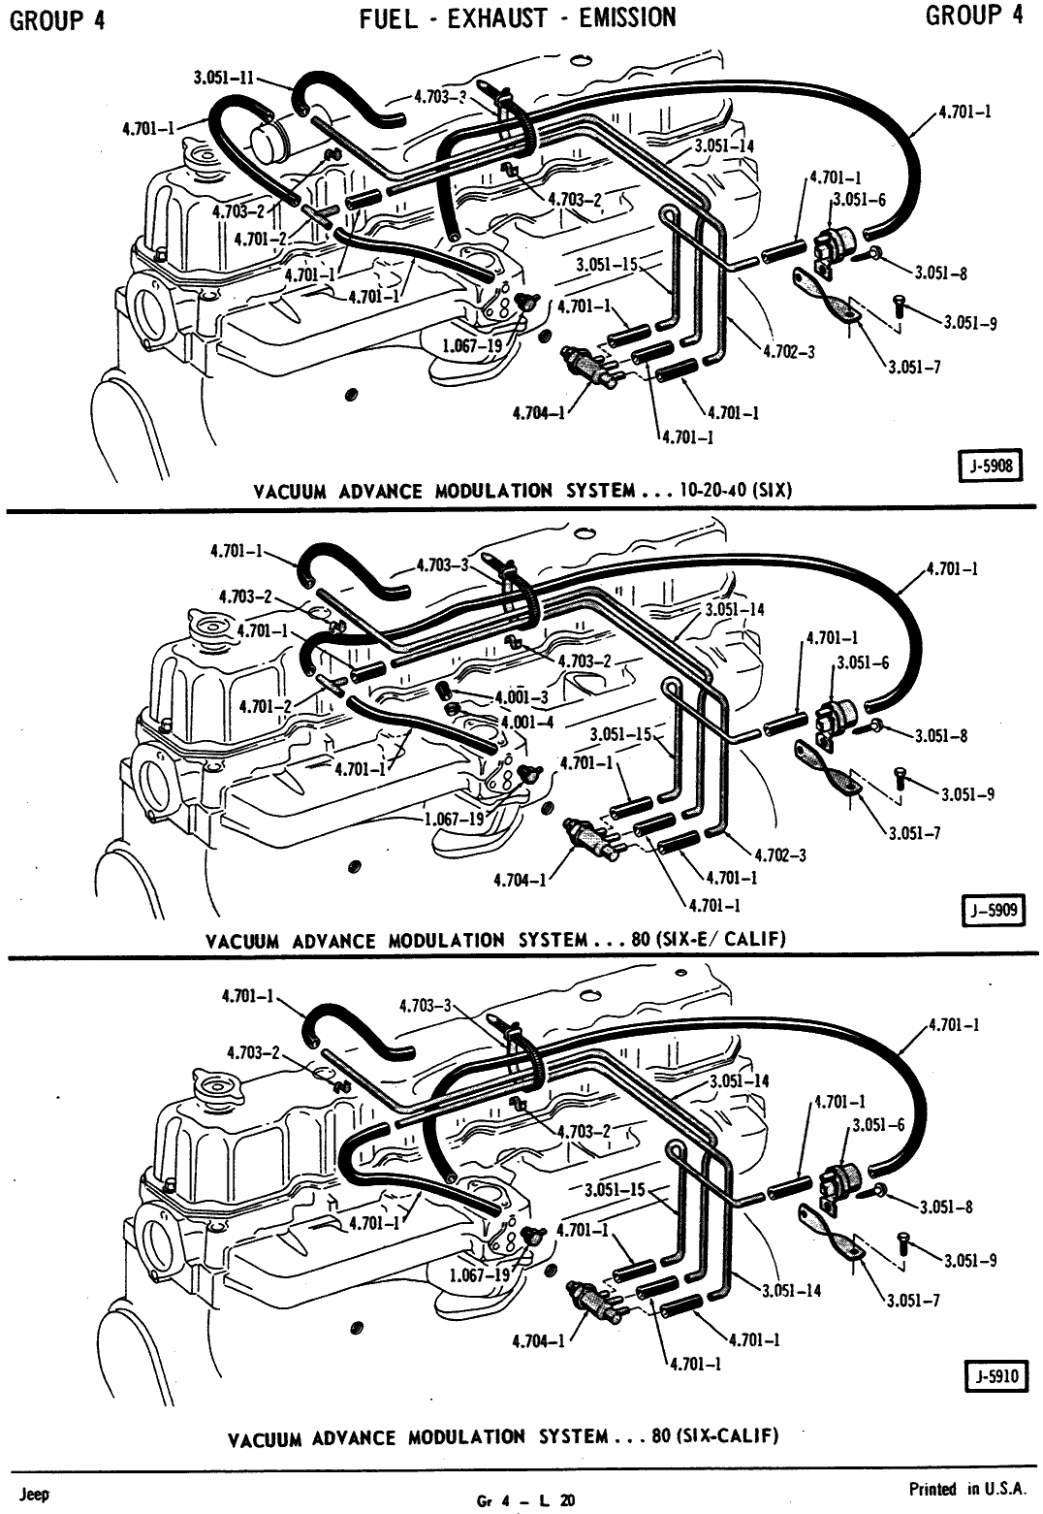 Amc 5 Engine Diagram Amc 5 Engine Diagram